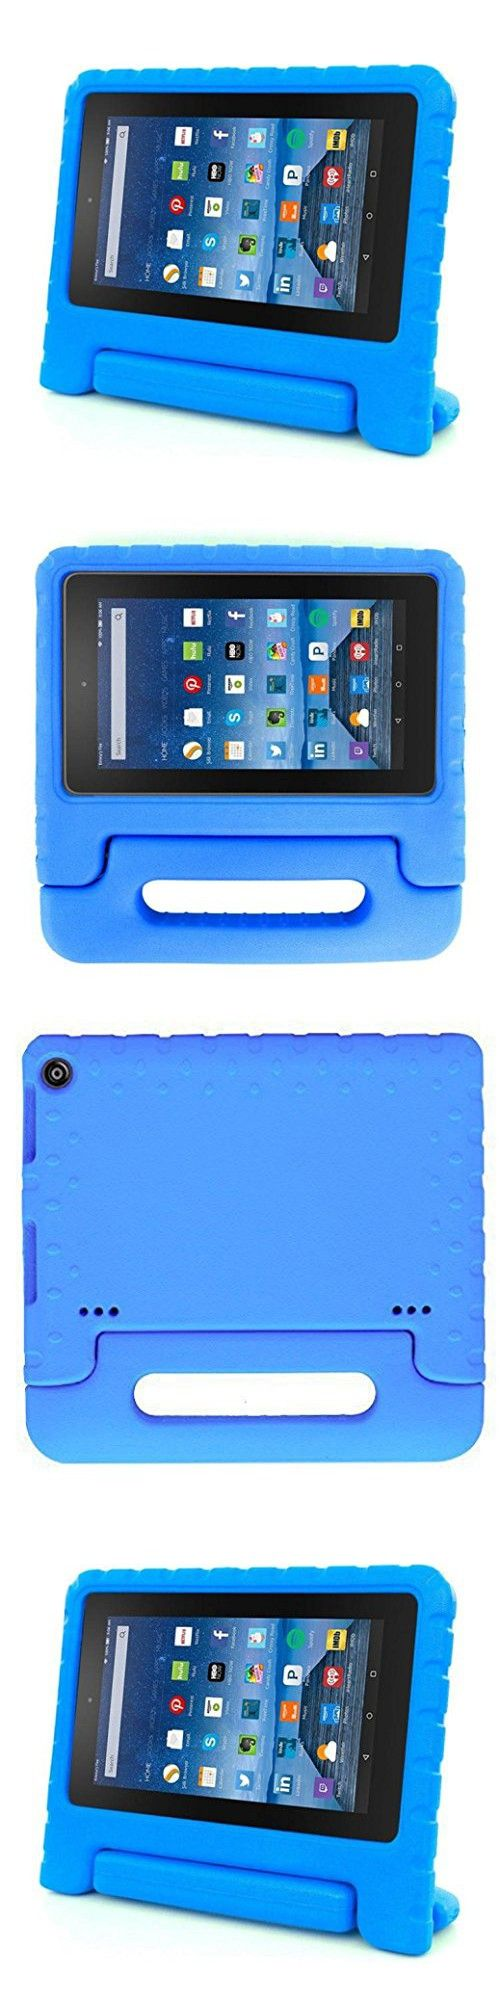 GBSELL New Kids Shock Proof Case Cover For All-New Amazon Kindle Fire HD 8 (6th Gen 2016) (Blue)